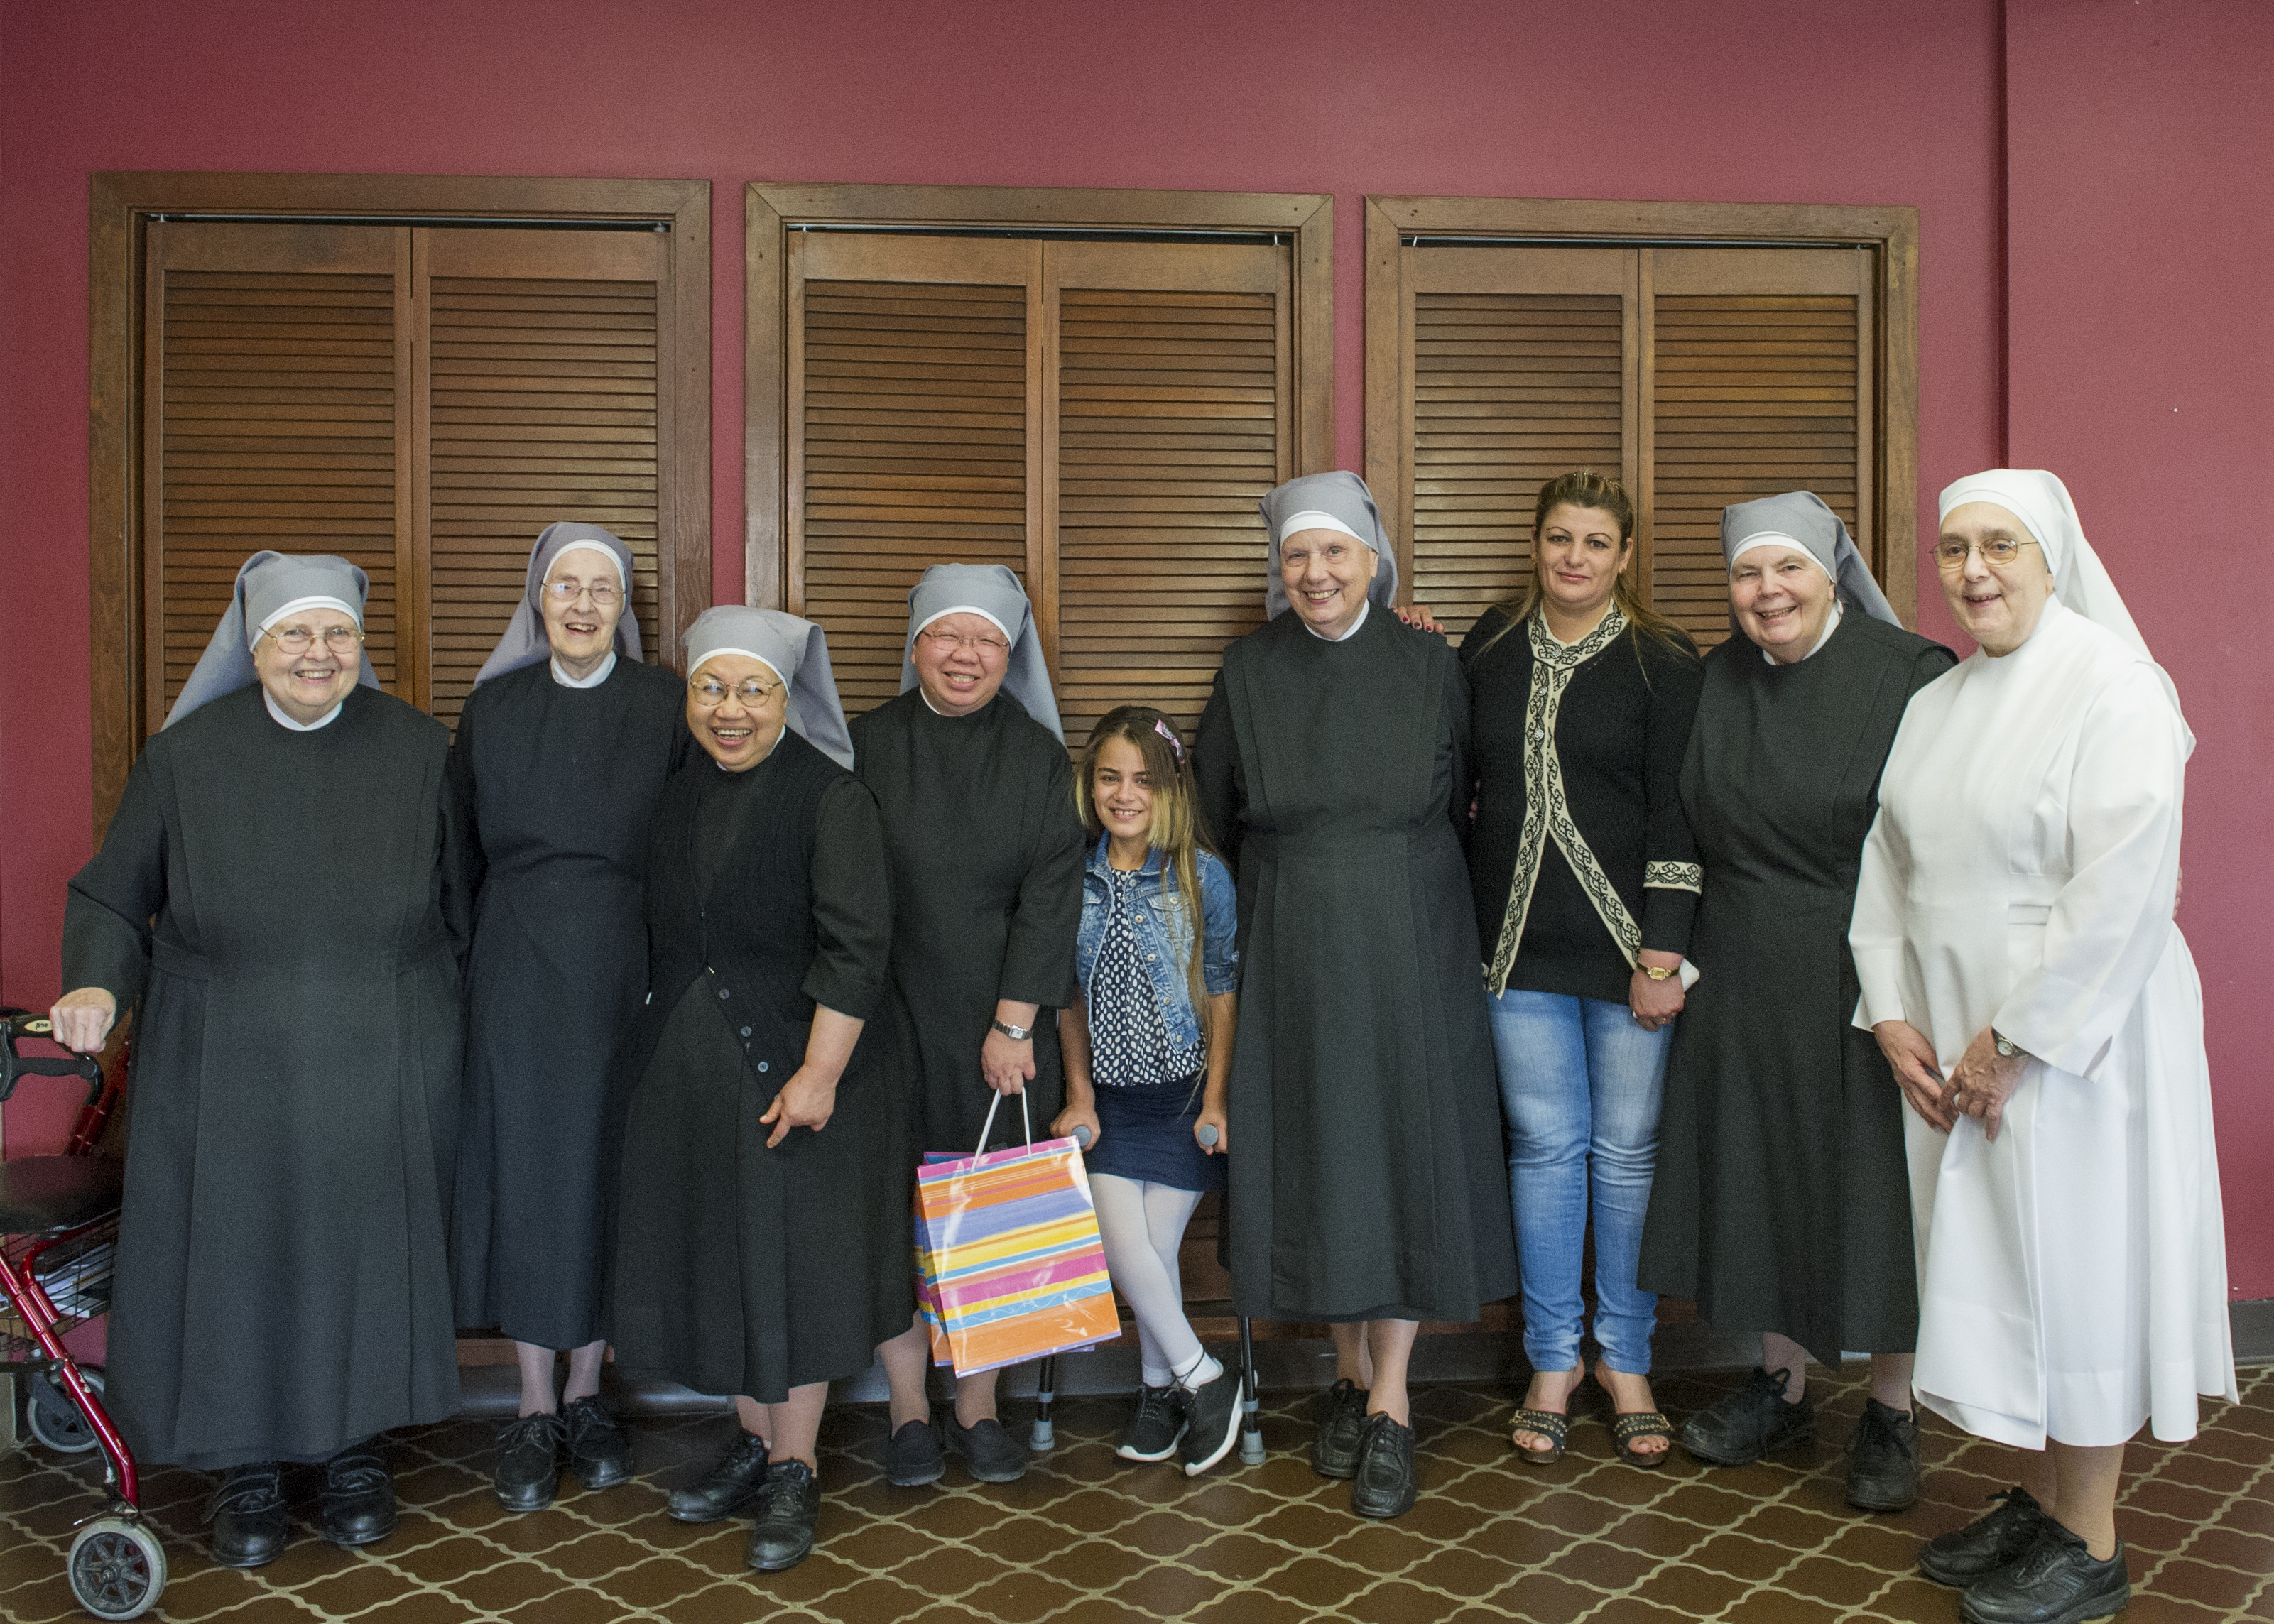 Katrina and her mother, Rajaa, Chaldeans from Iraq, with some of the Little Sisters of the Poor in the St. Joseph's Residence in Enfield, CT